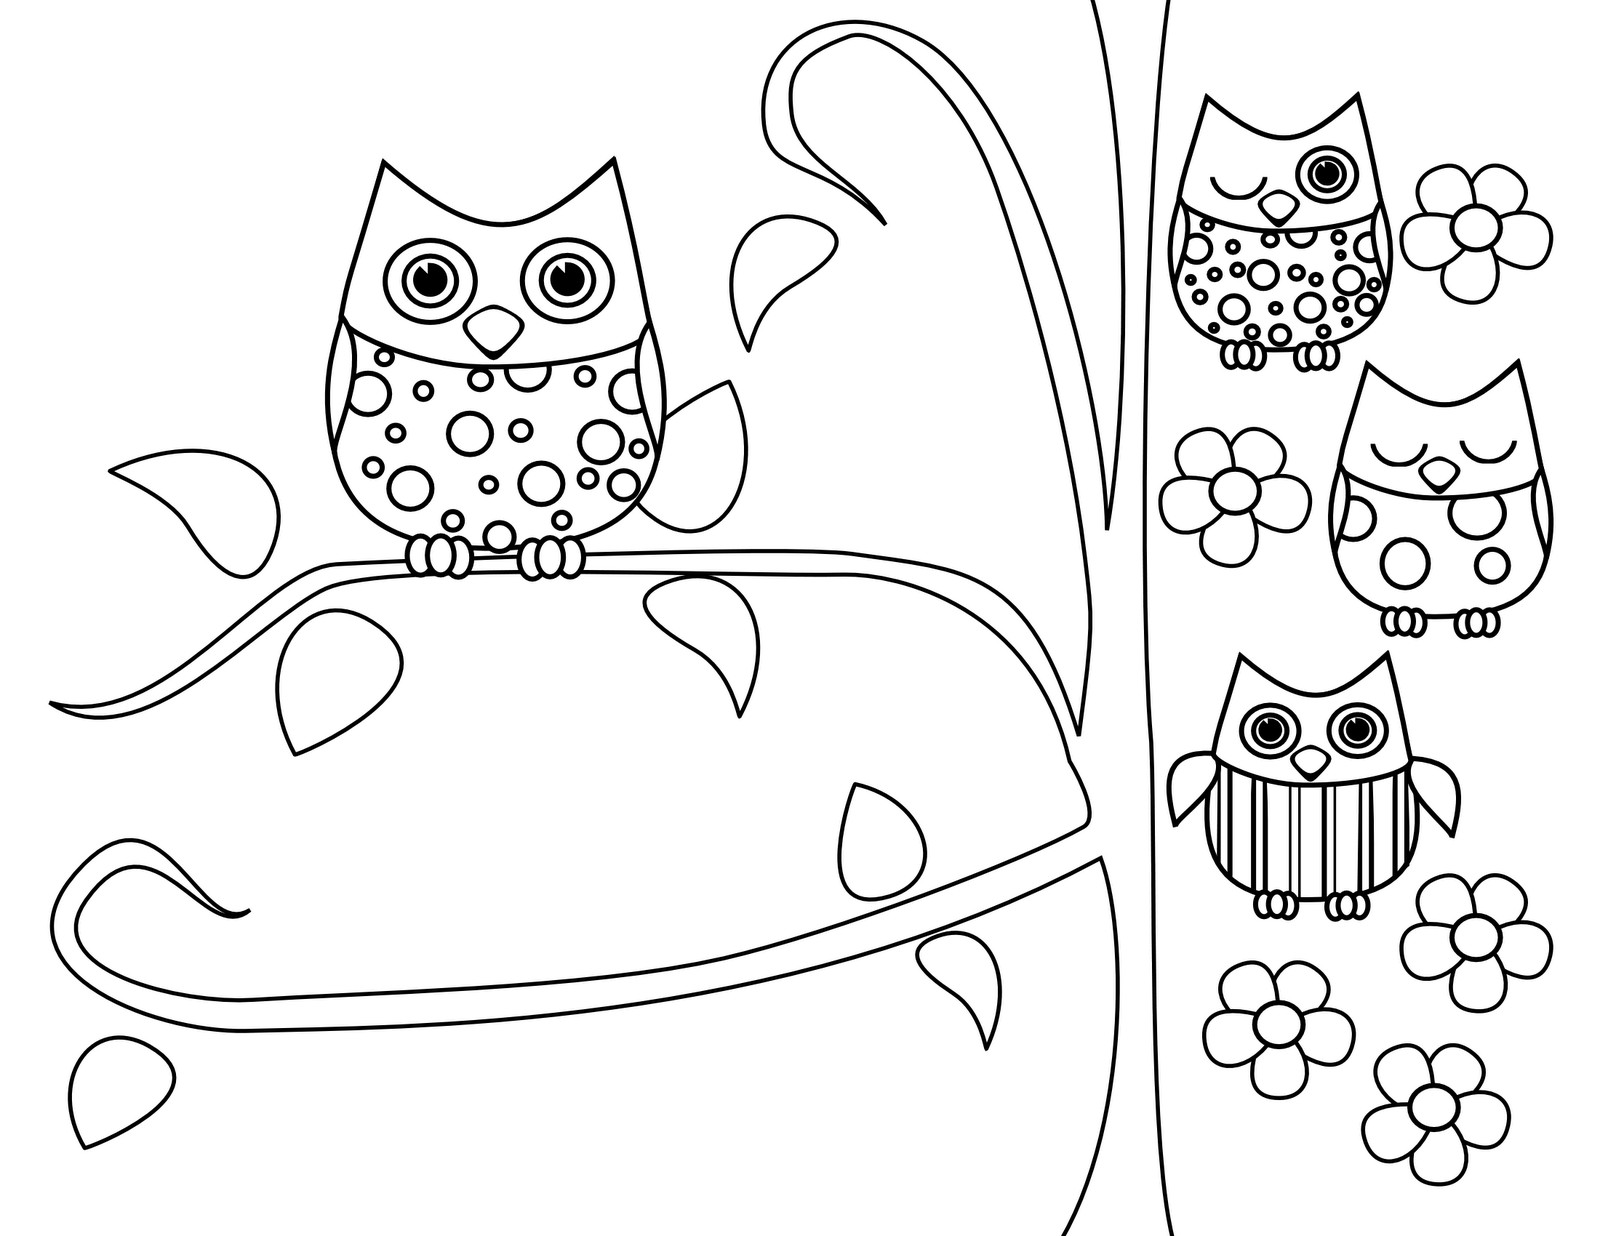 Best ideas about Owl Coloring Sheets For Girls That Say Mom . Save or Pin Cute Owl Coloring Pages Coloring Home Now.